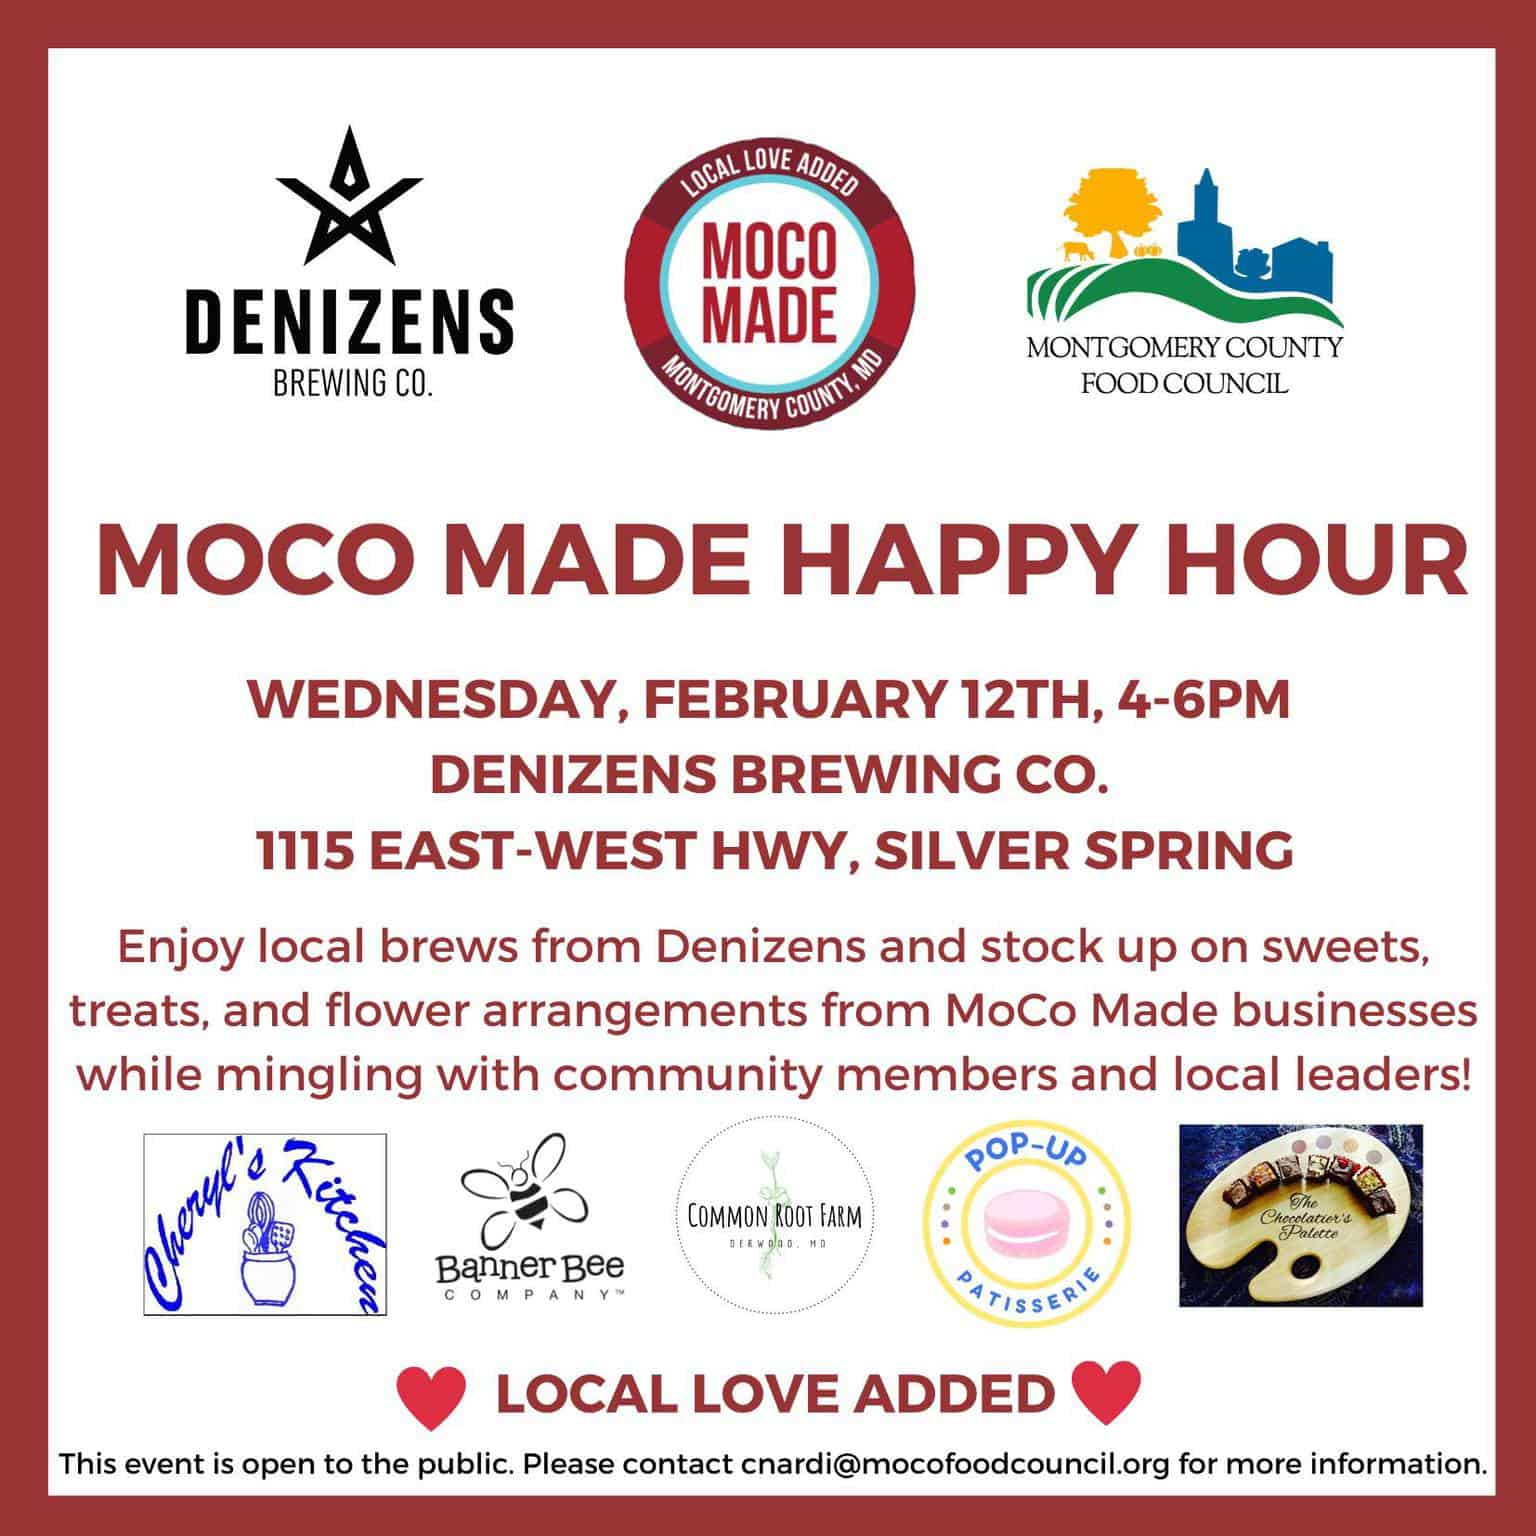 MoCo Made Happy Hour: Local Love Added!